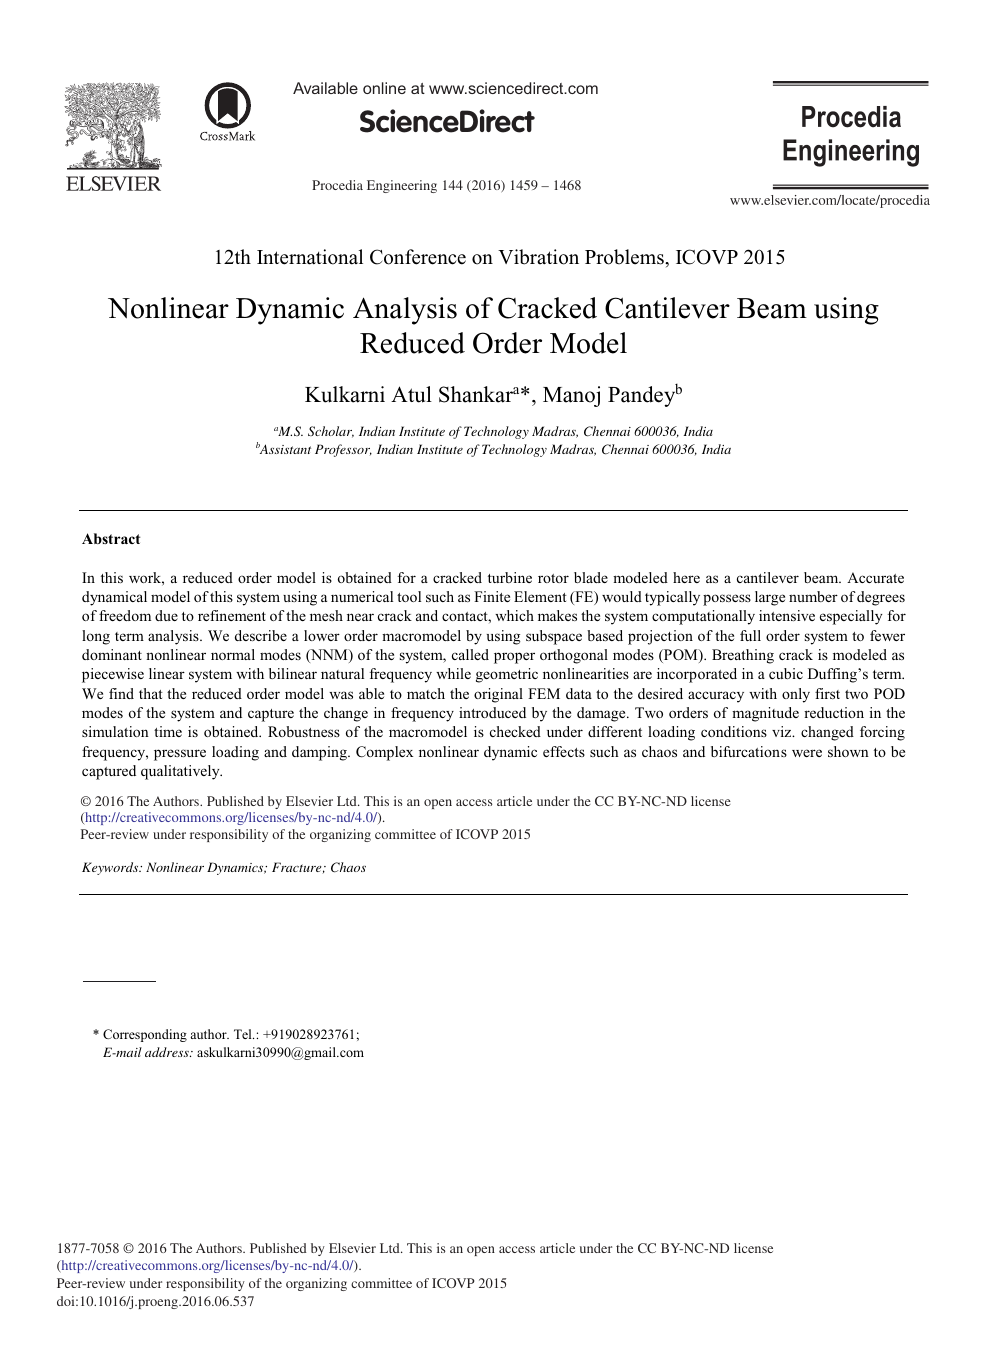 Nonlinear Dynamic Analysis of Cracked Cantilever Beam Using Reduced